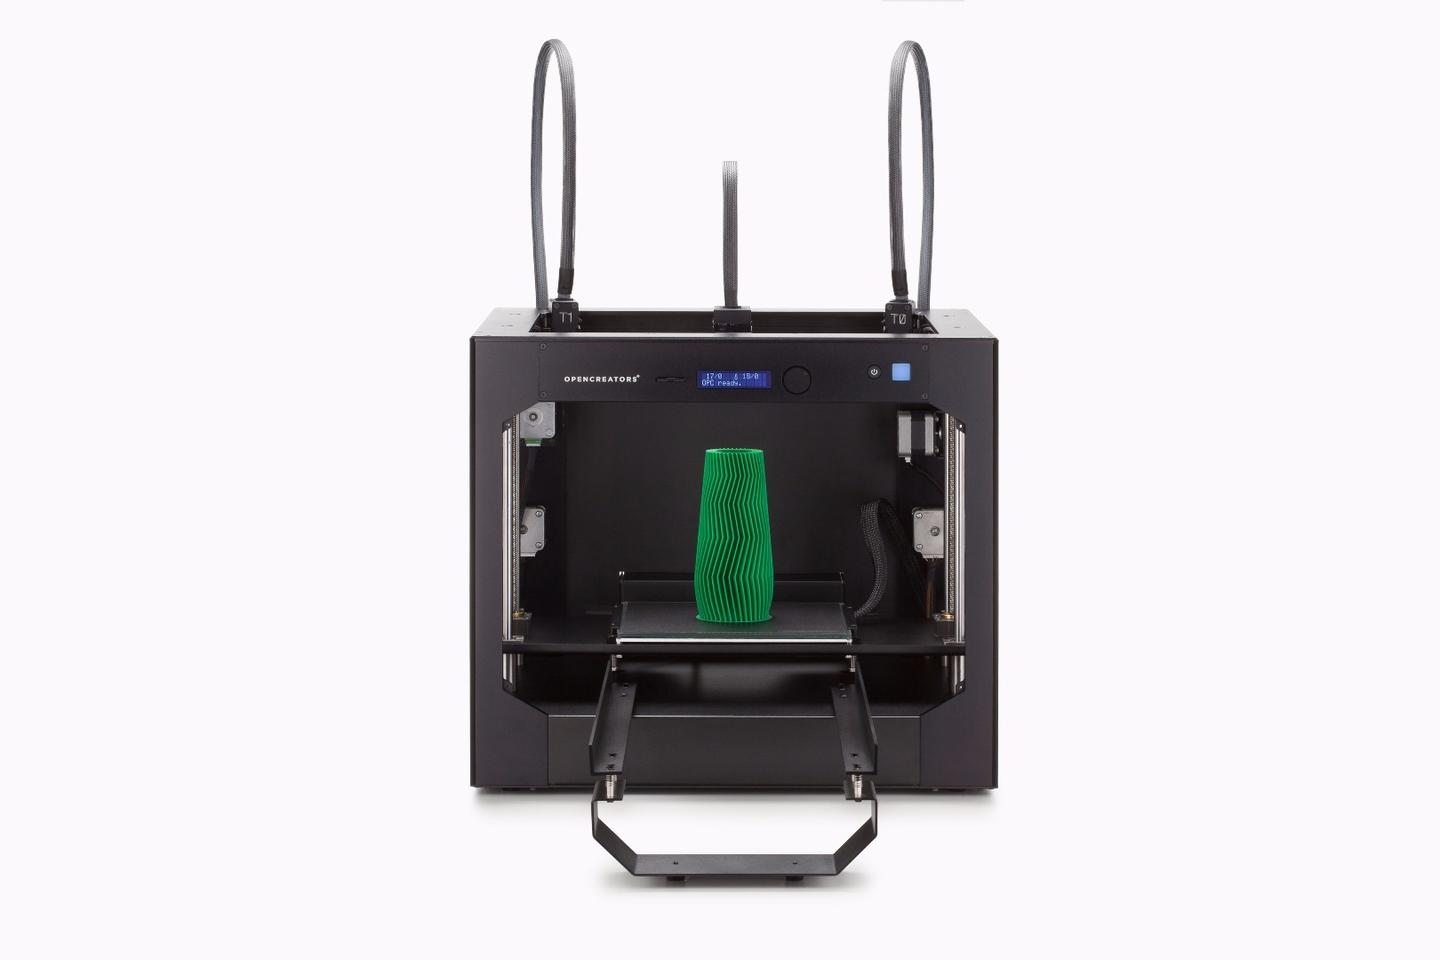 Design prototype of theBS210fused filament printer from Opencreators